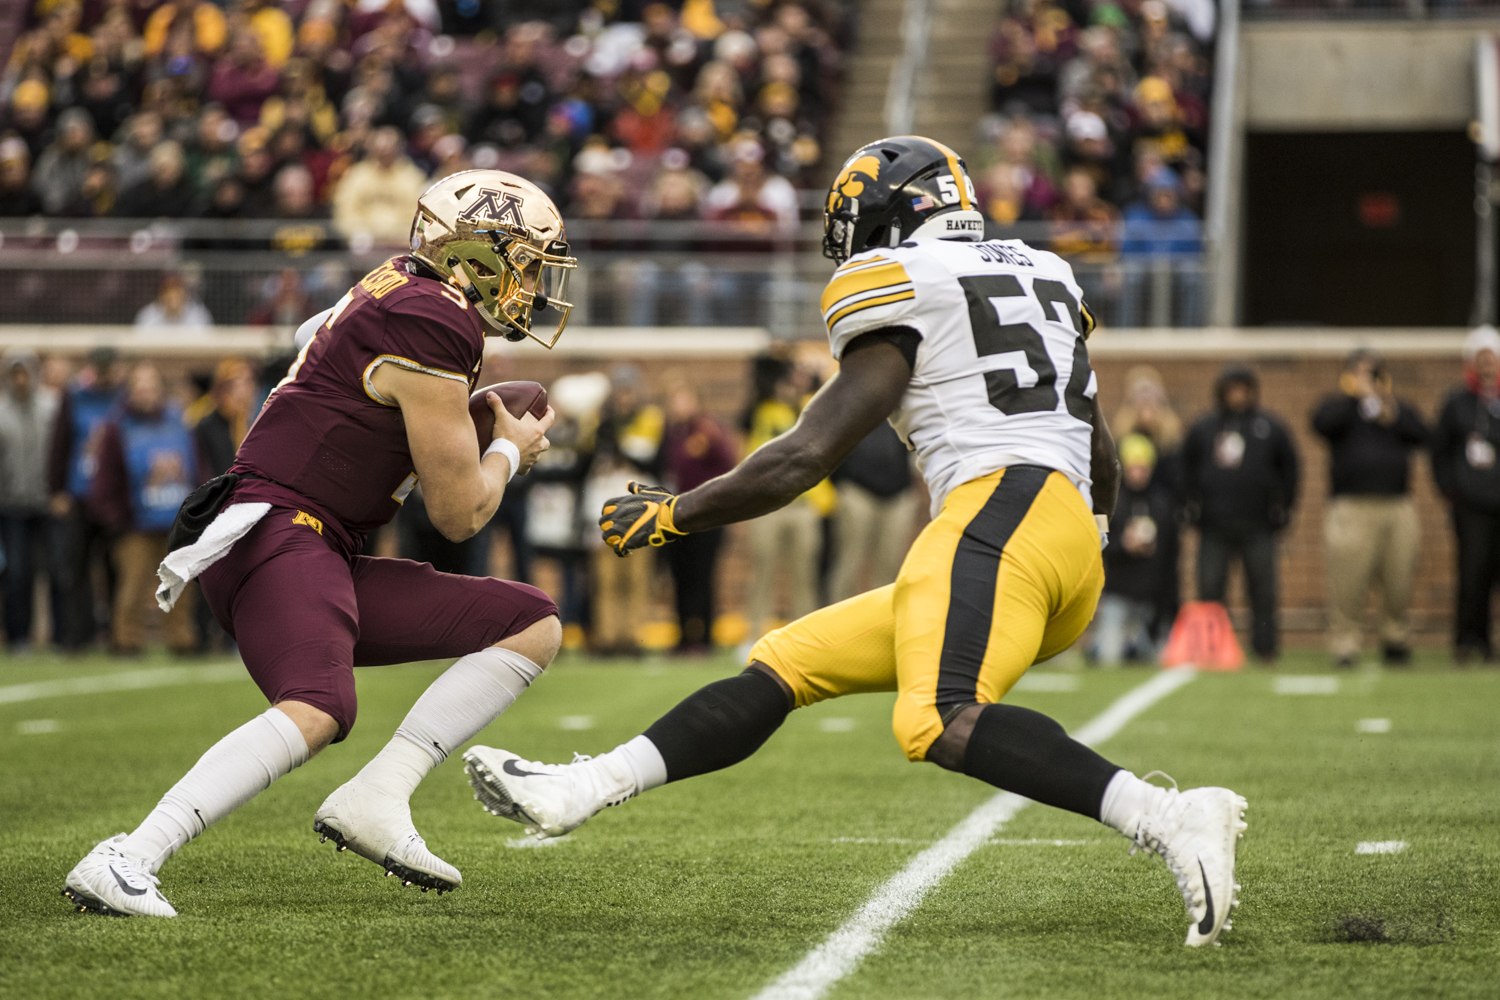 Minnesota+quarterback+Zack+Annexstad+is+pressured+by+Iowa+linebacker+Amani+Jones+during+Iowa%27s+game+against+Minnesota+at+TCF+Bank+Stadium+on+Saturday%2C+October+6%2C+2018.+The+Hawkeyes+defeated+the+Golden+Gophers+48-31.